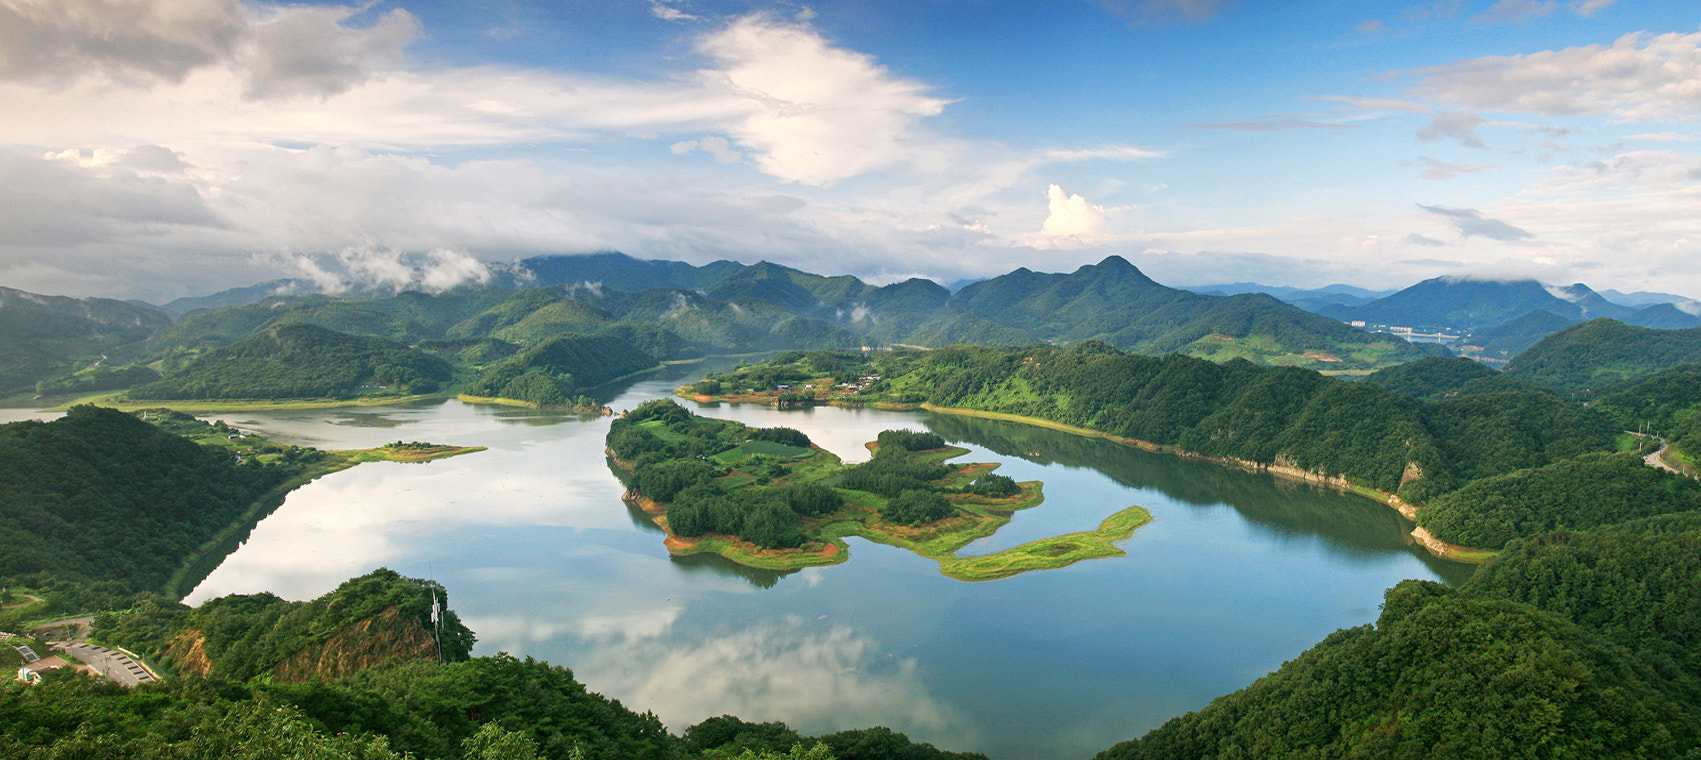 Photograph the Lake of Oak_Jung by Sun Byoung Park on 500px